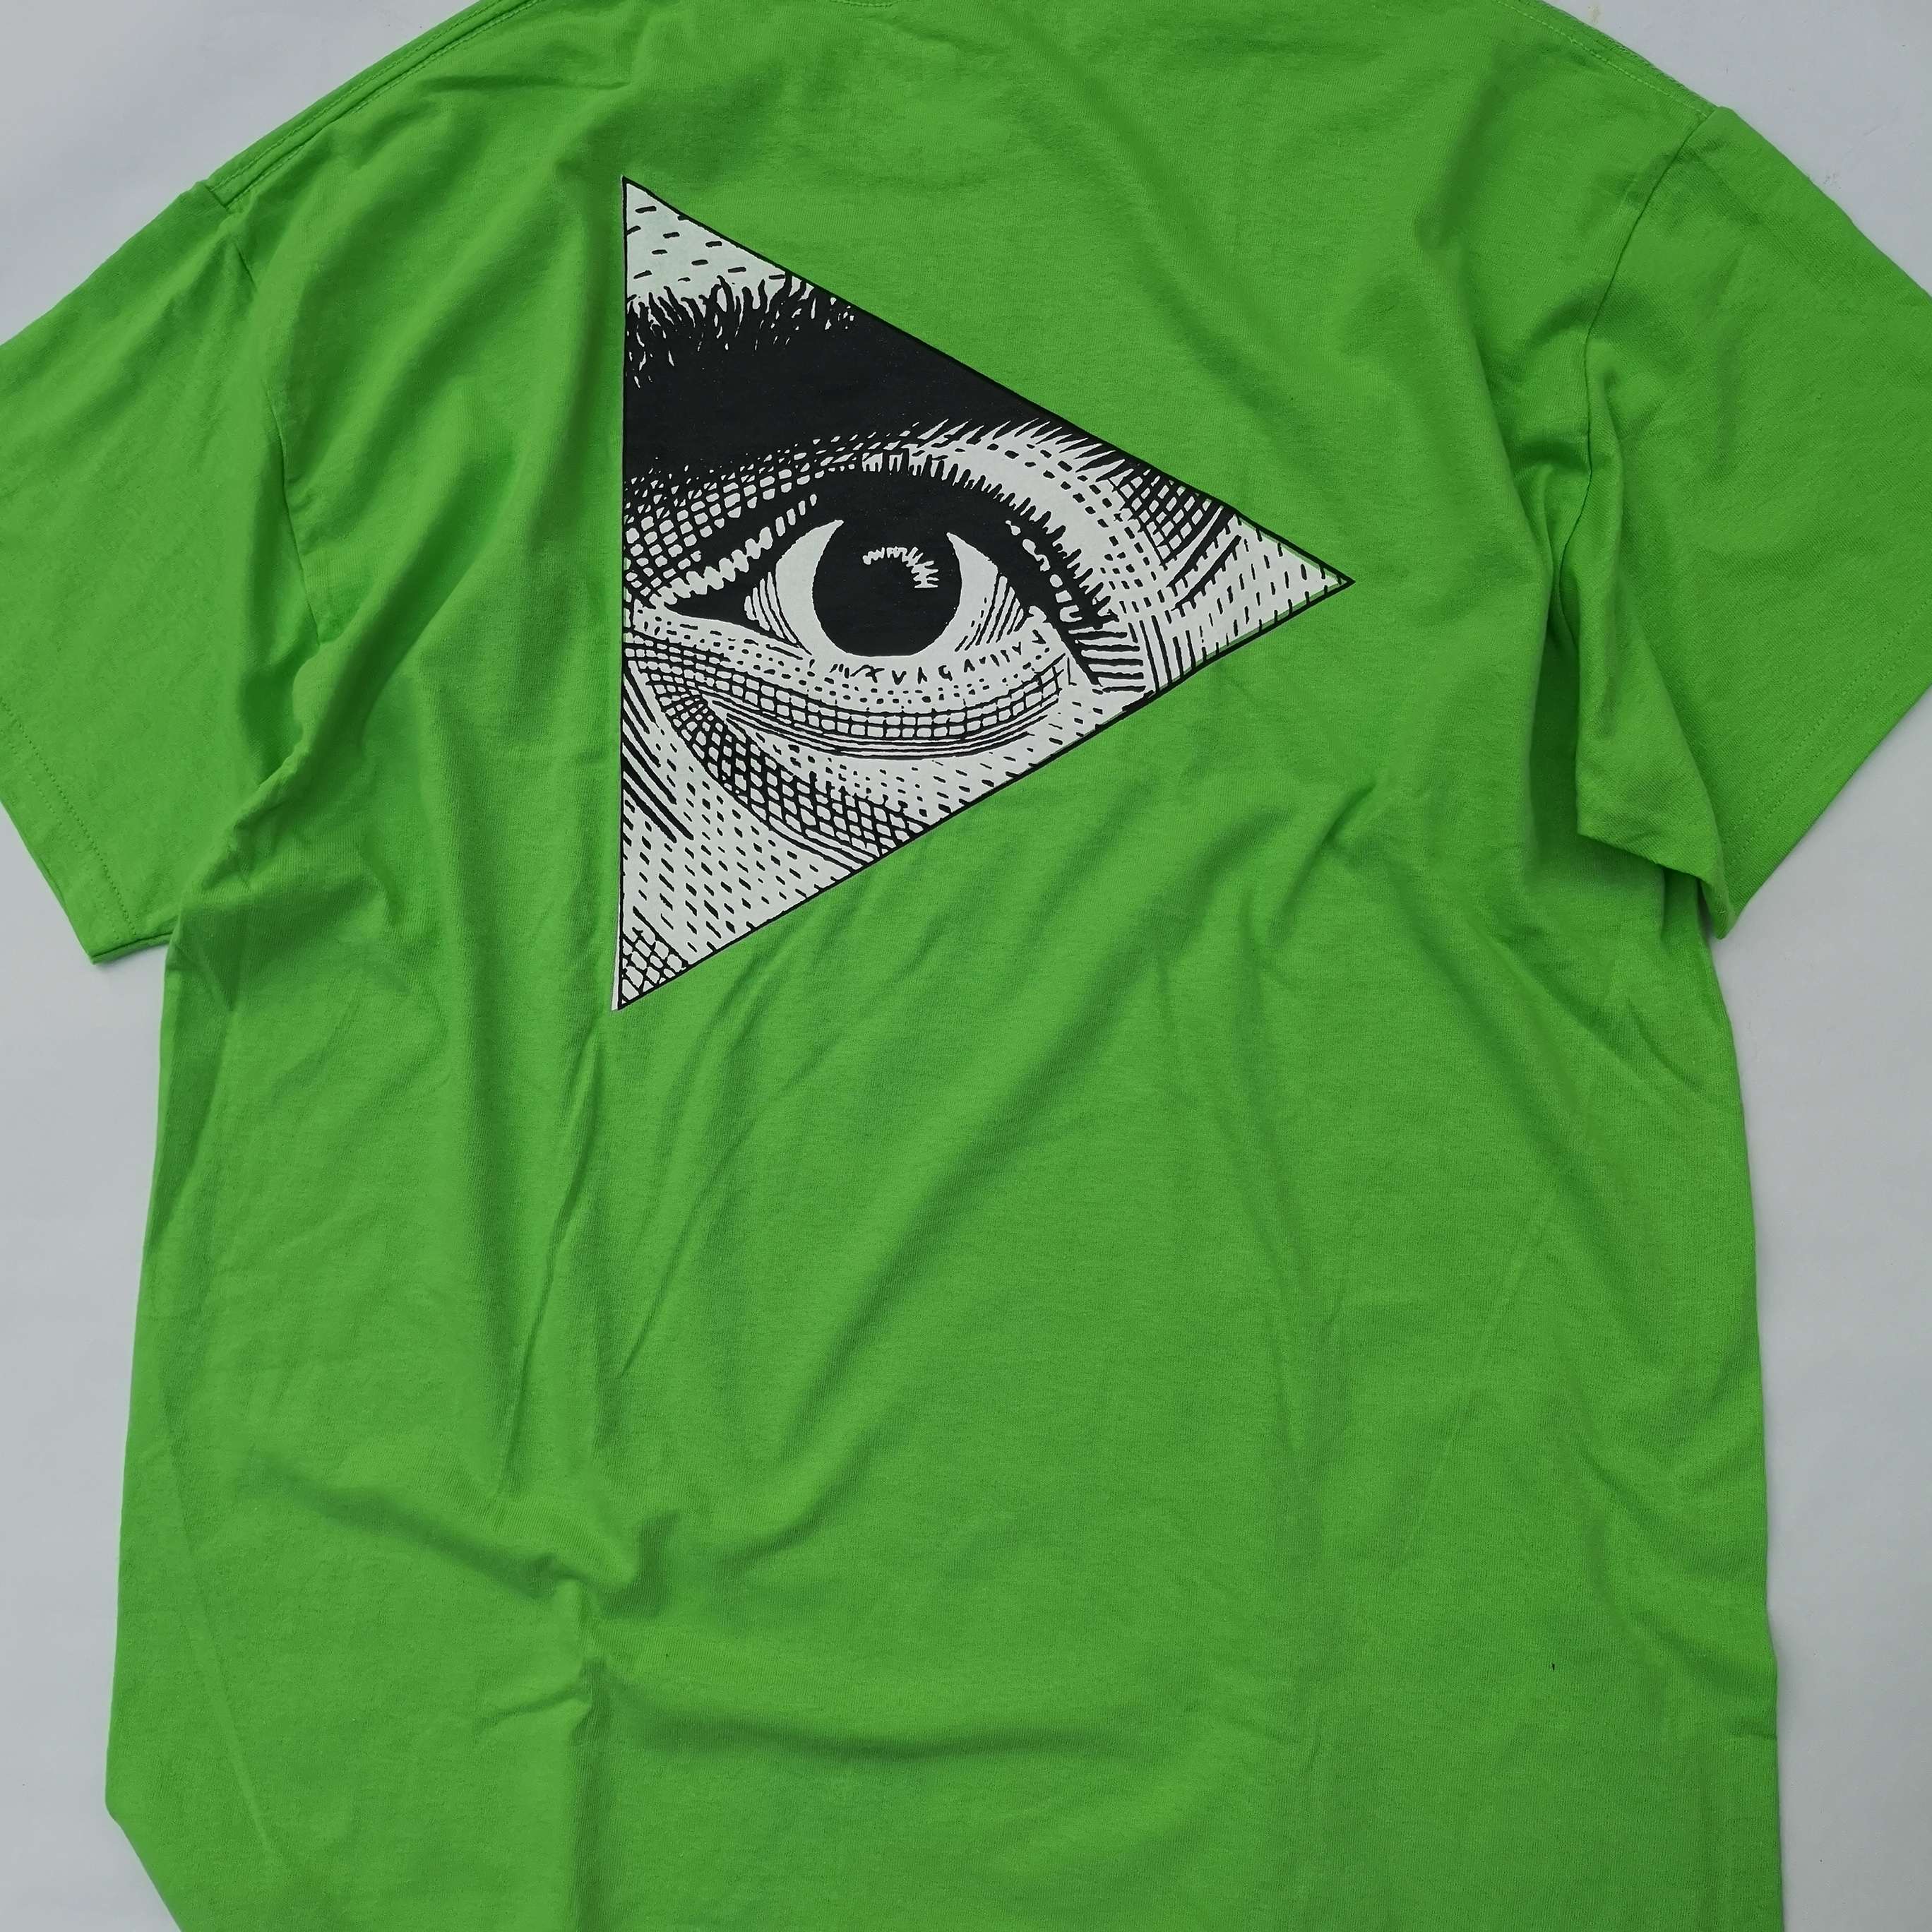 * LENNON EYE TEE COLORS